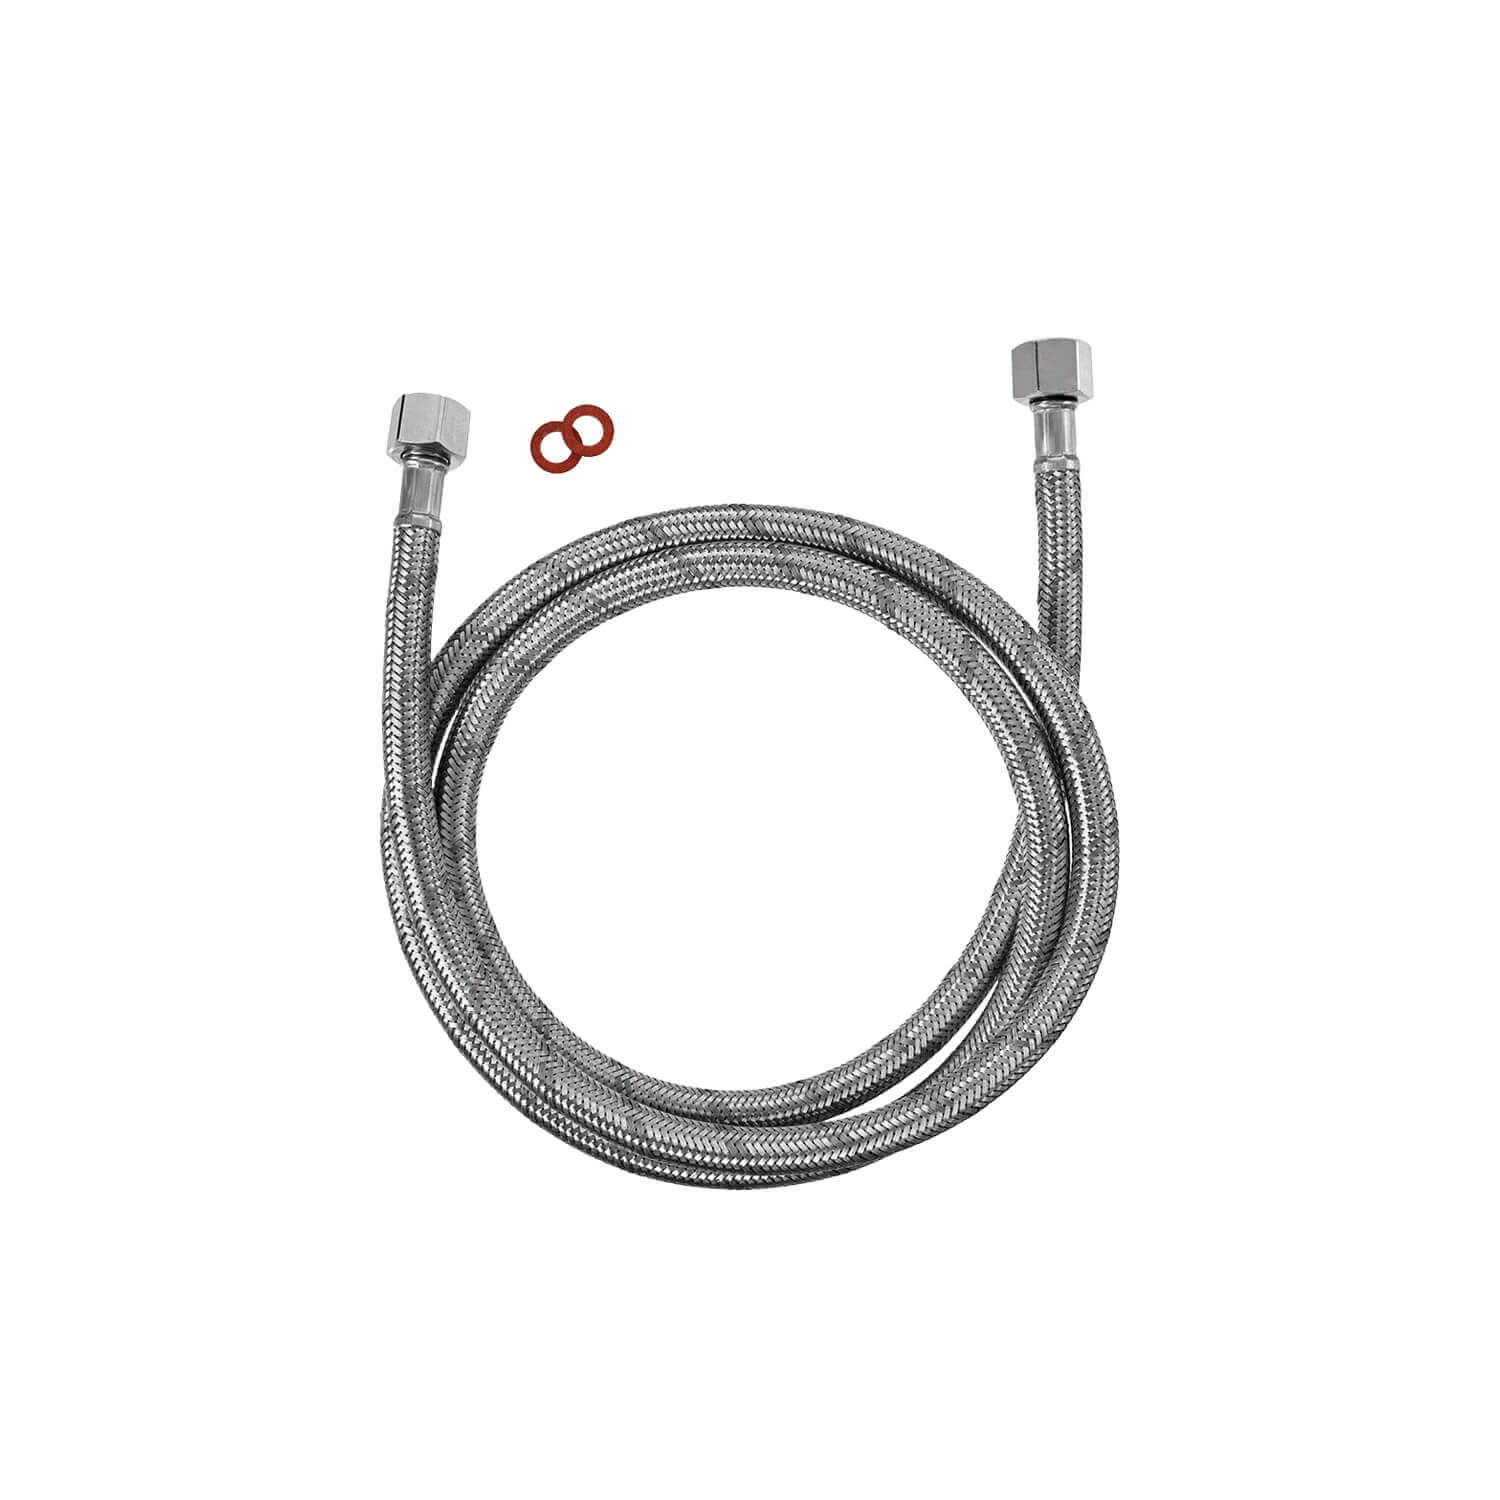 Jura - Claris - Connection Hose - 3/8 X 3/8